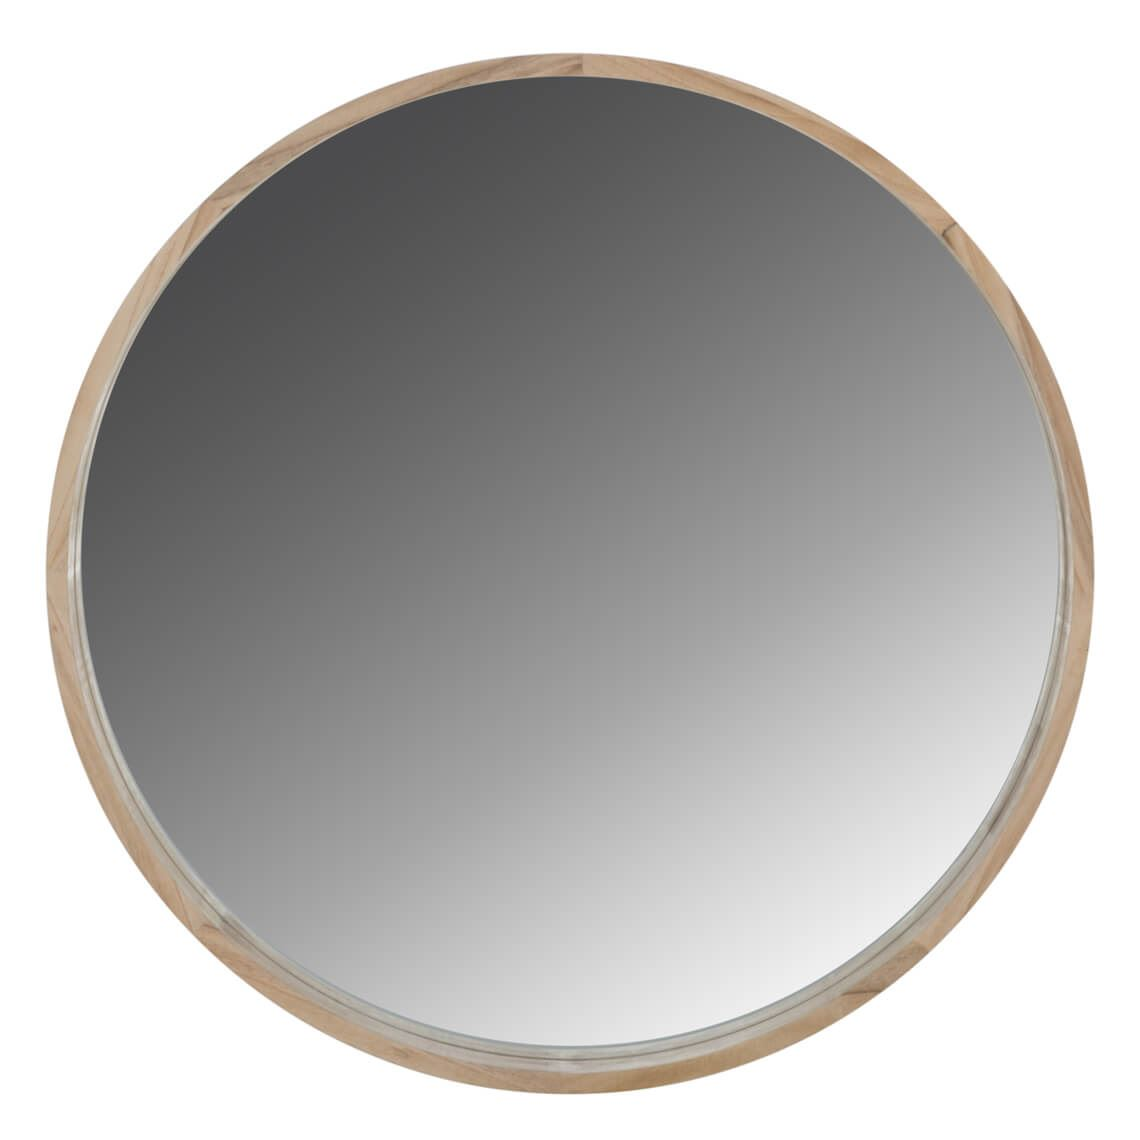 Solene Round Mirror Size W 90cm x D 5cm x H 90cm Timber/Mirrored Glass Freedom by Freedom, a Mirrors for sale on Style Sourcebook